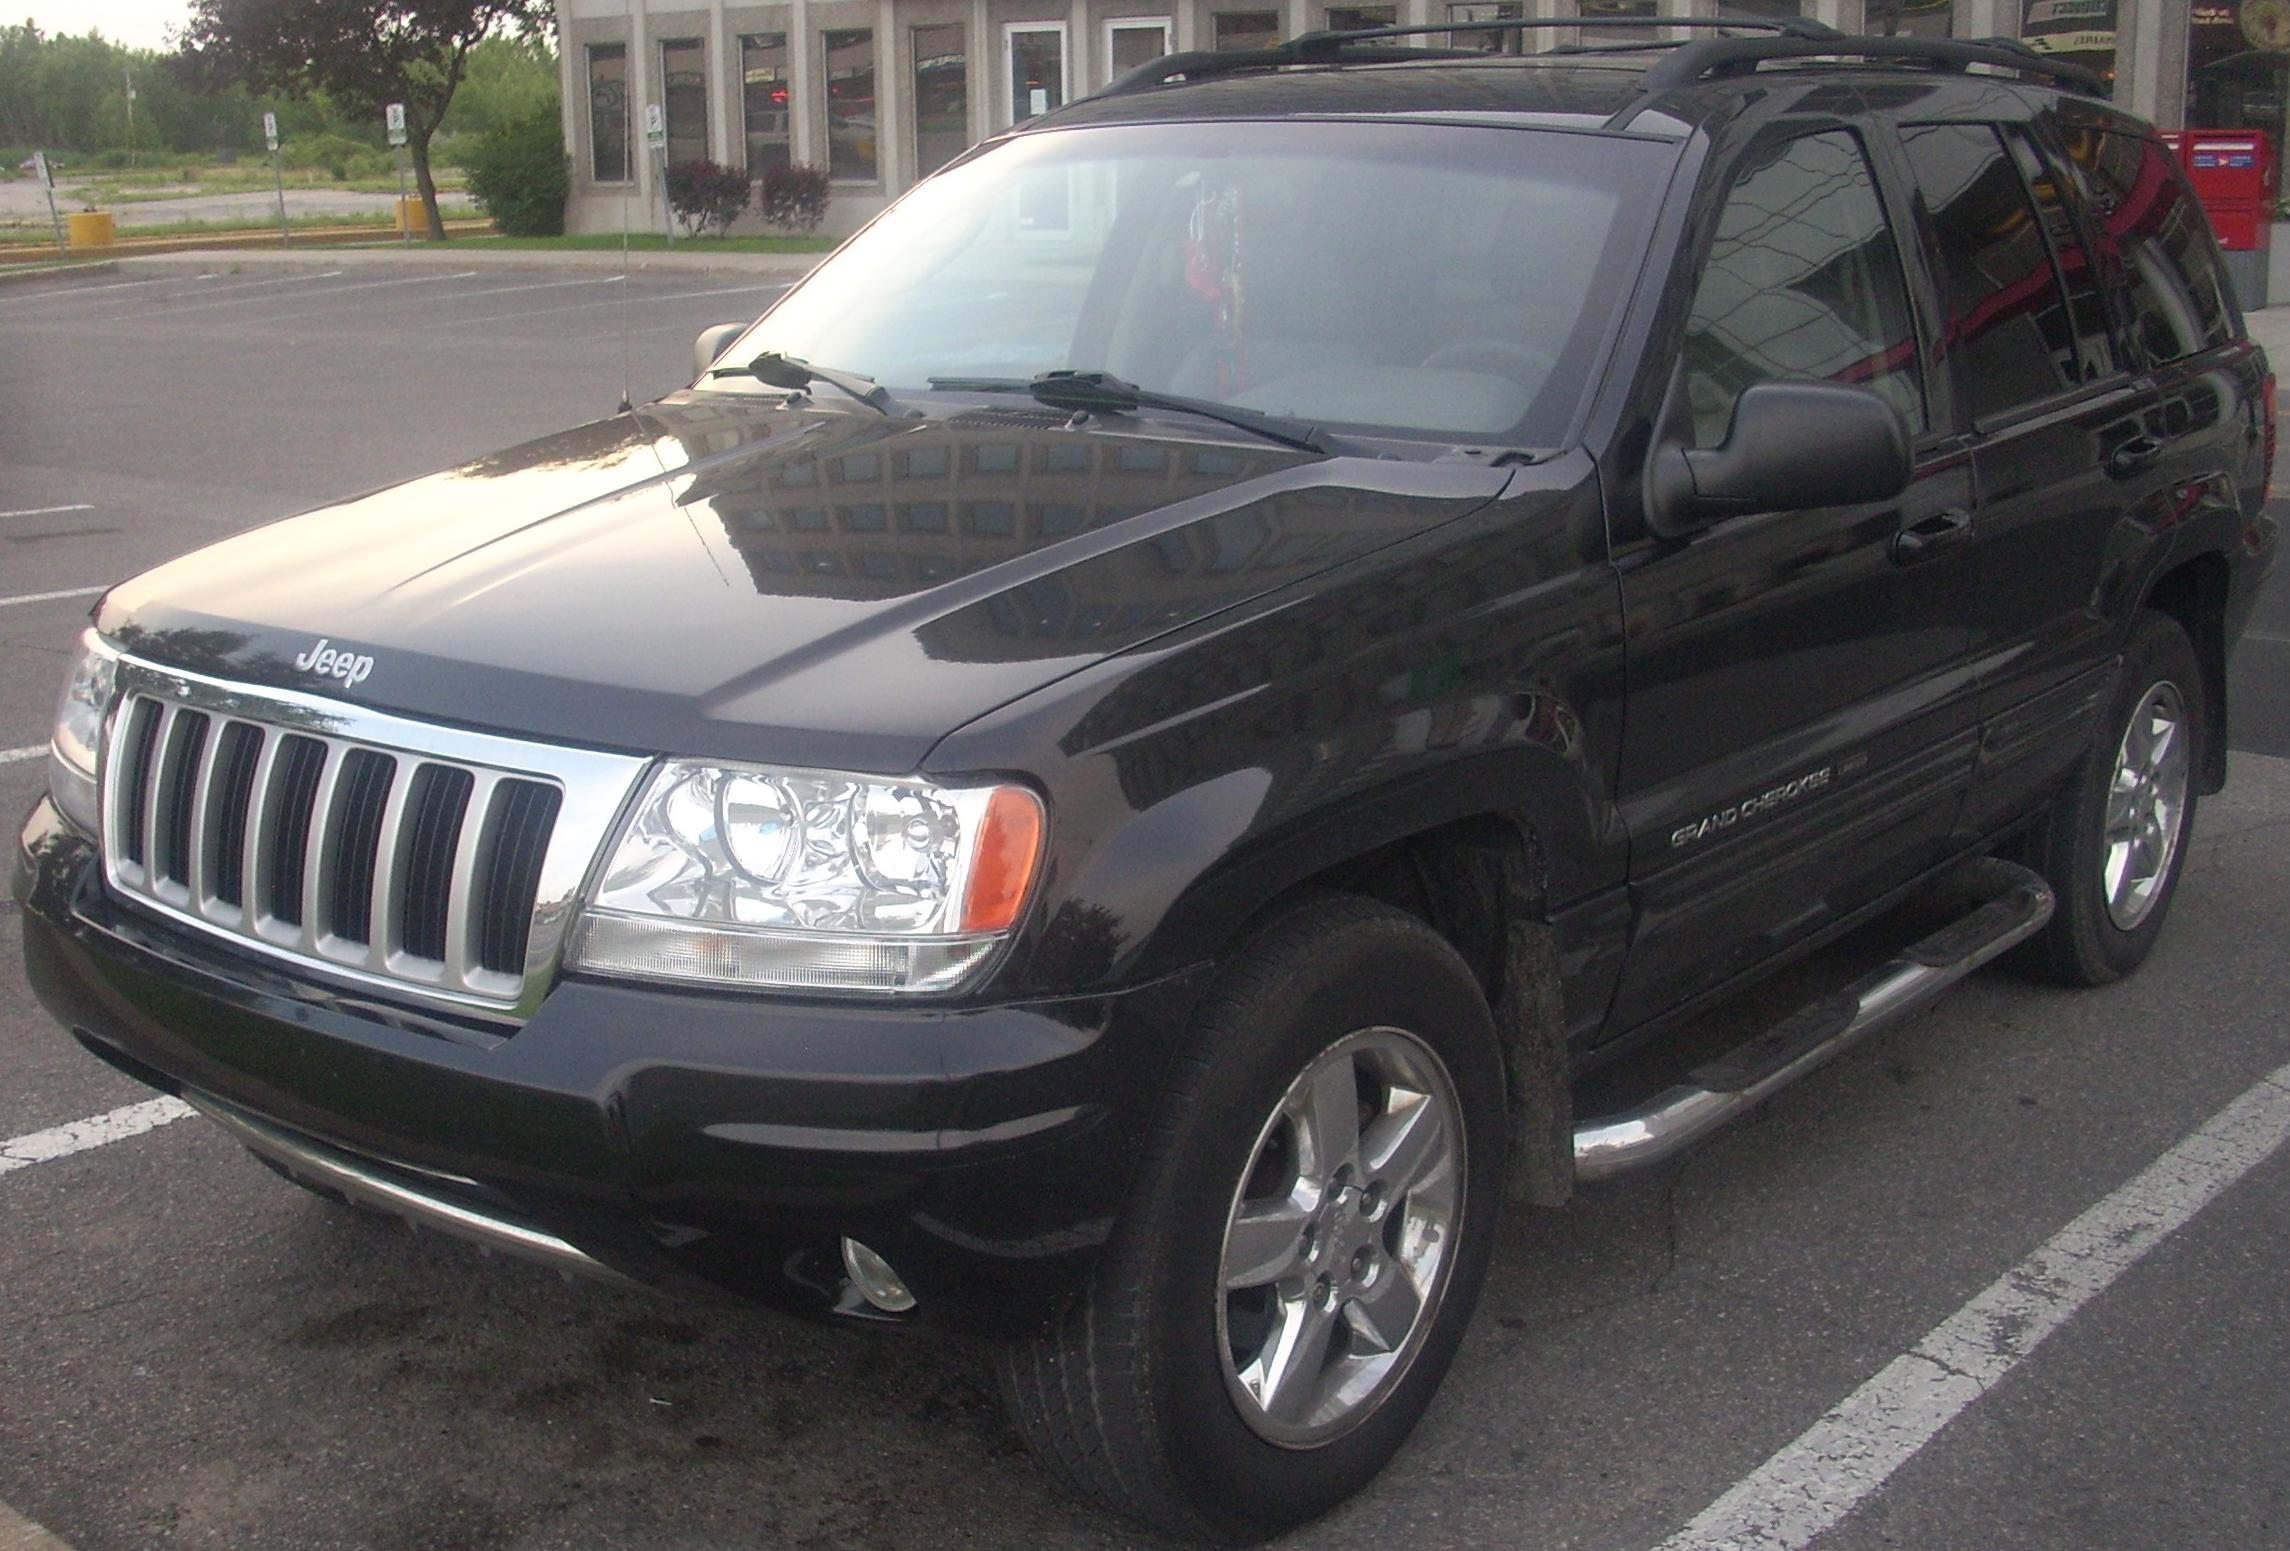 file 39 04 jeep grand cherokee limited les chauds vendredis. Cars Review. Best American Auto & Cars Review